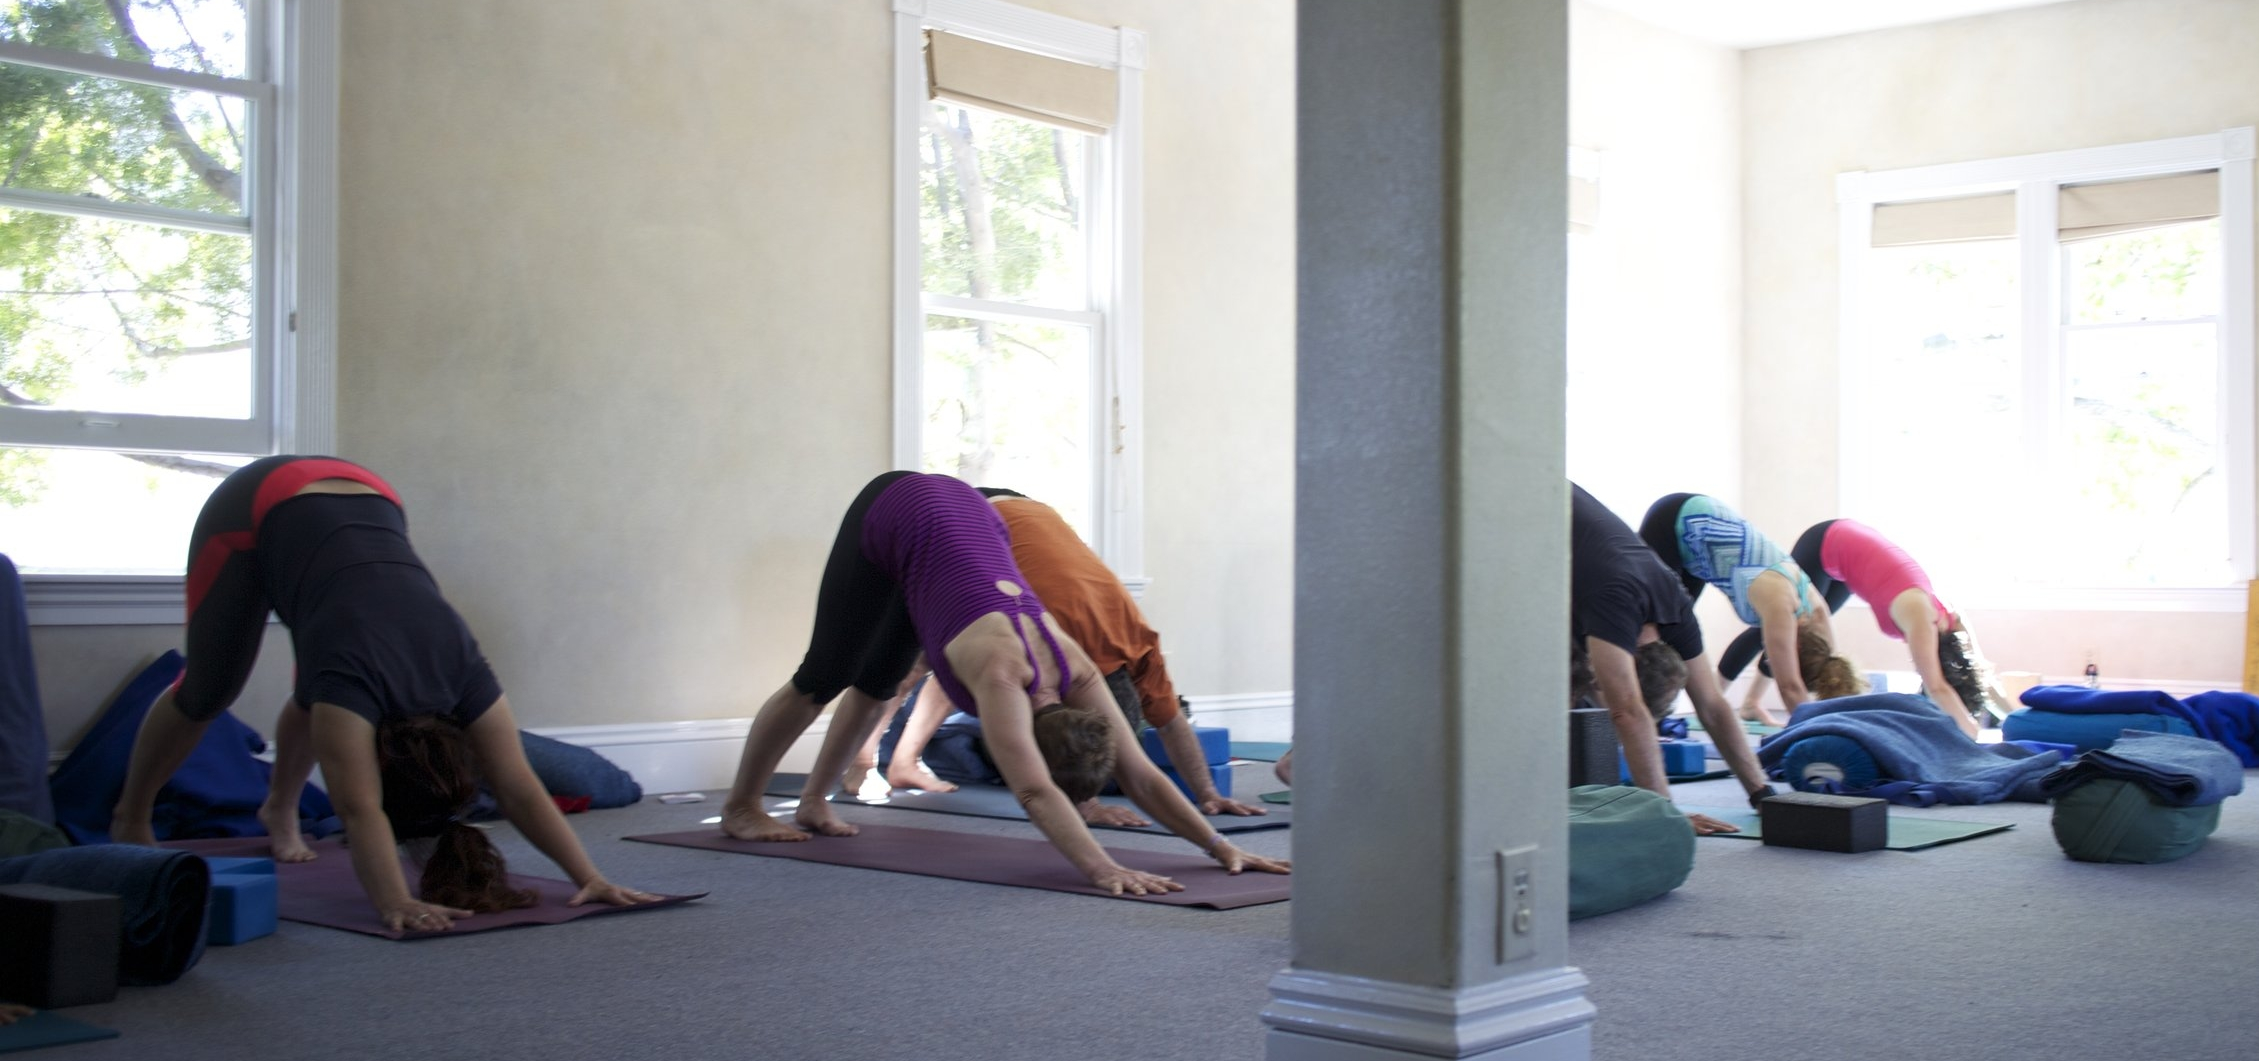 Yoga for Renewal, 4th Street Yoga